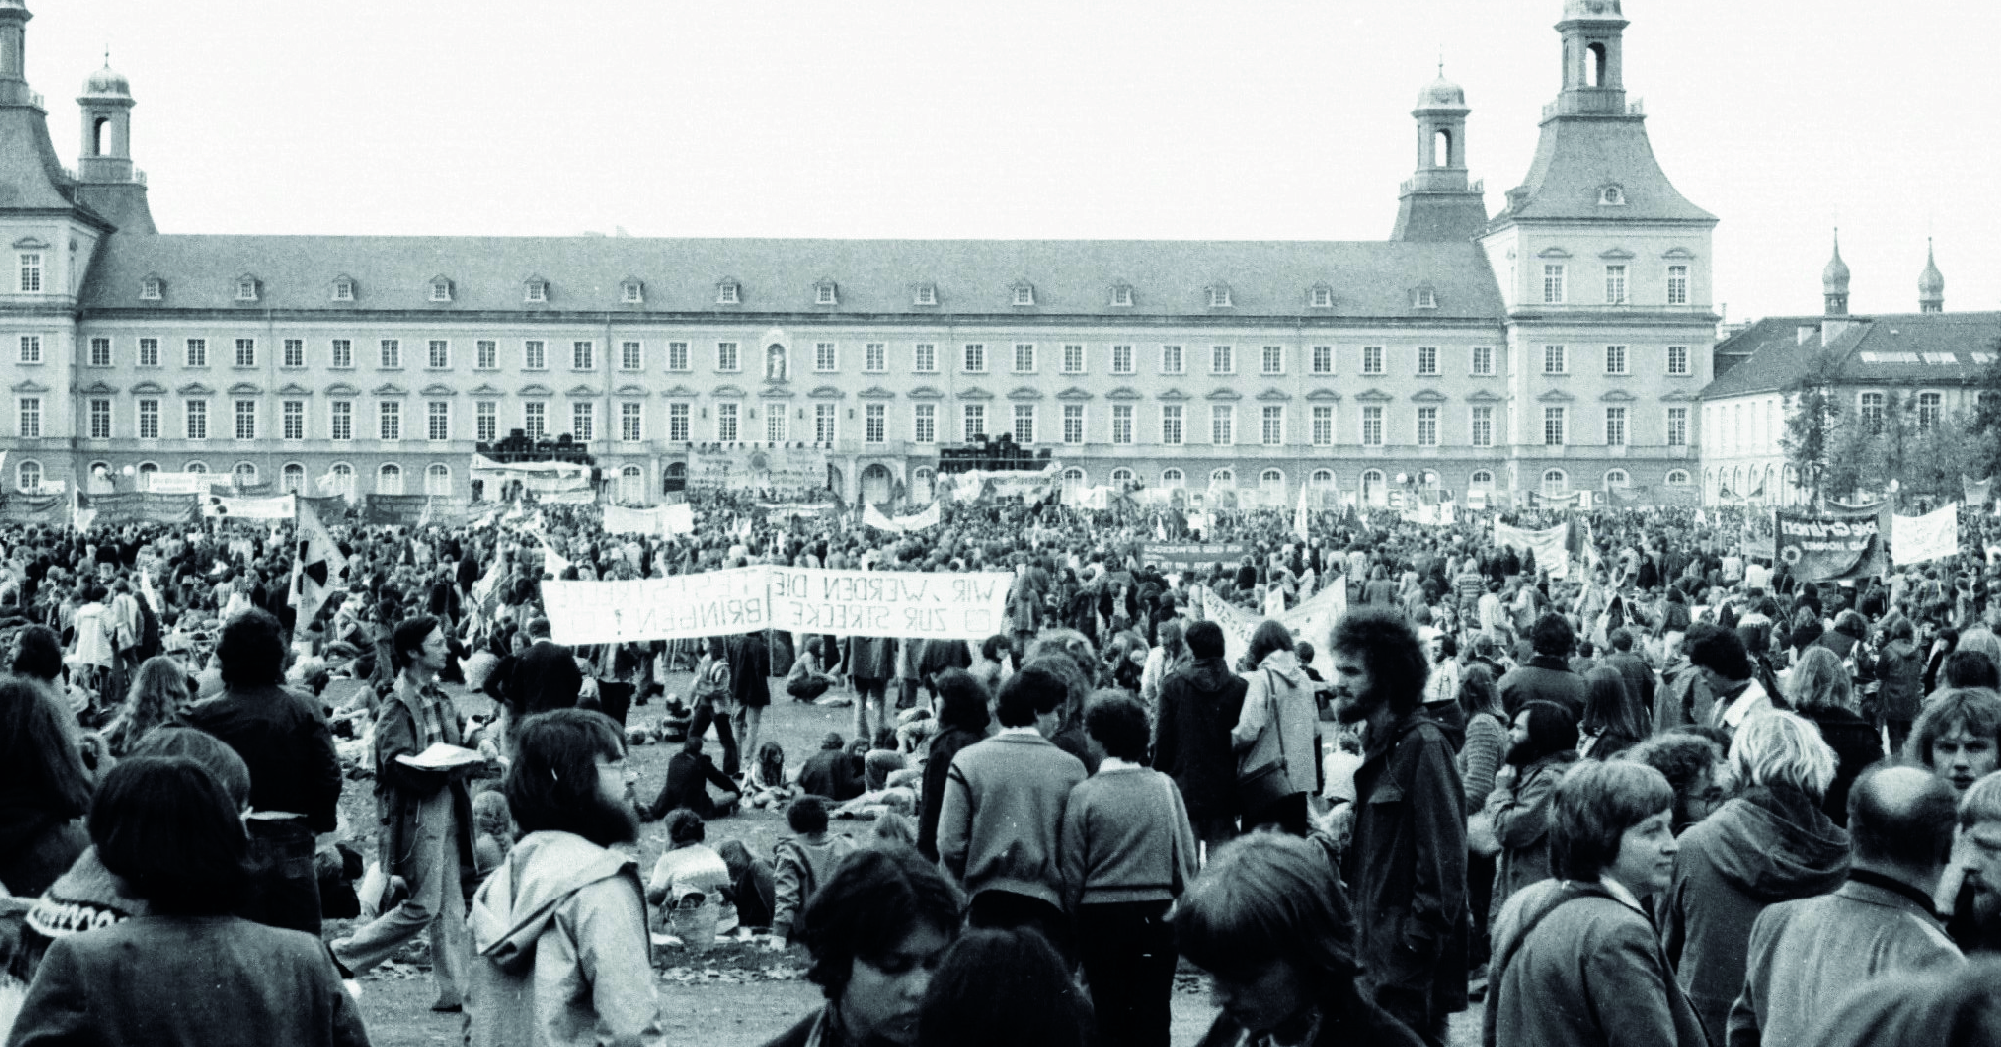 The German anti-nuclear power movement